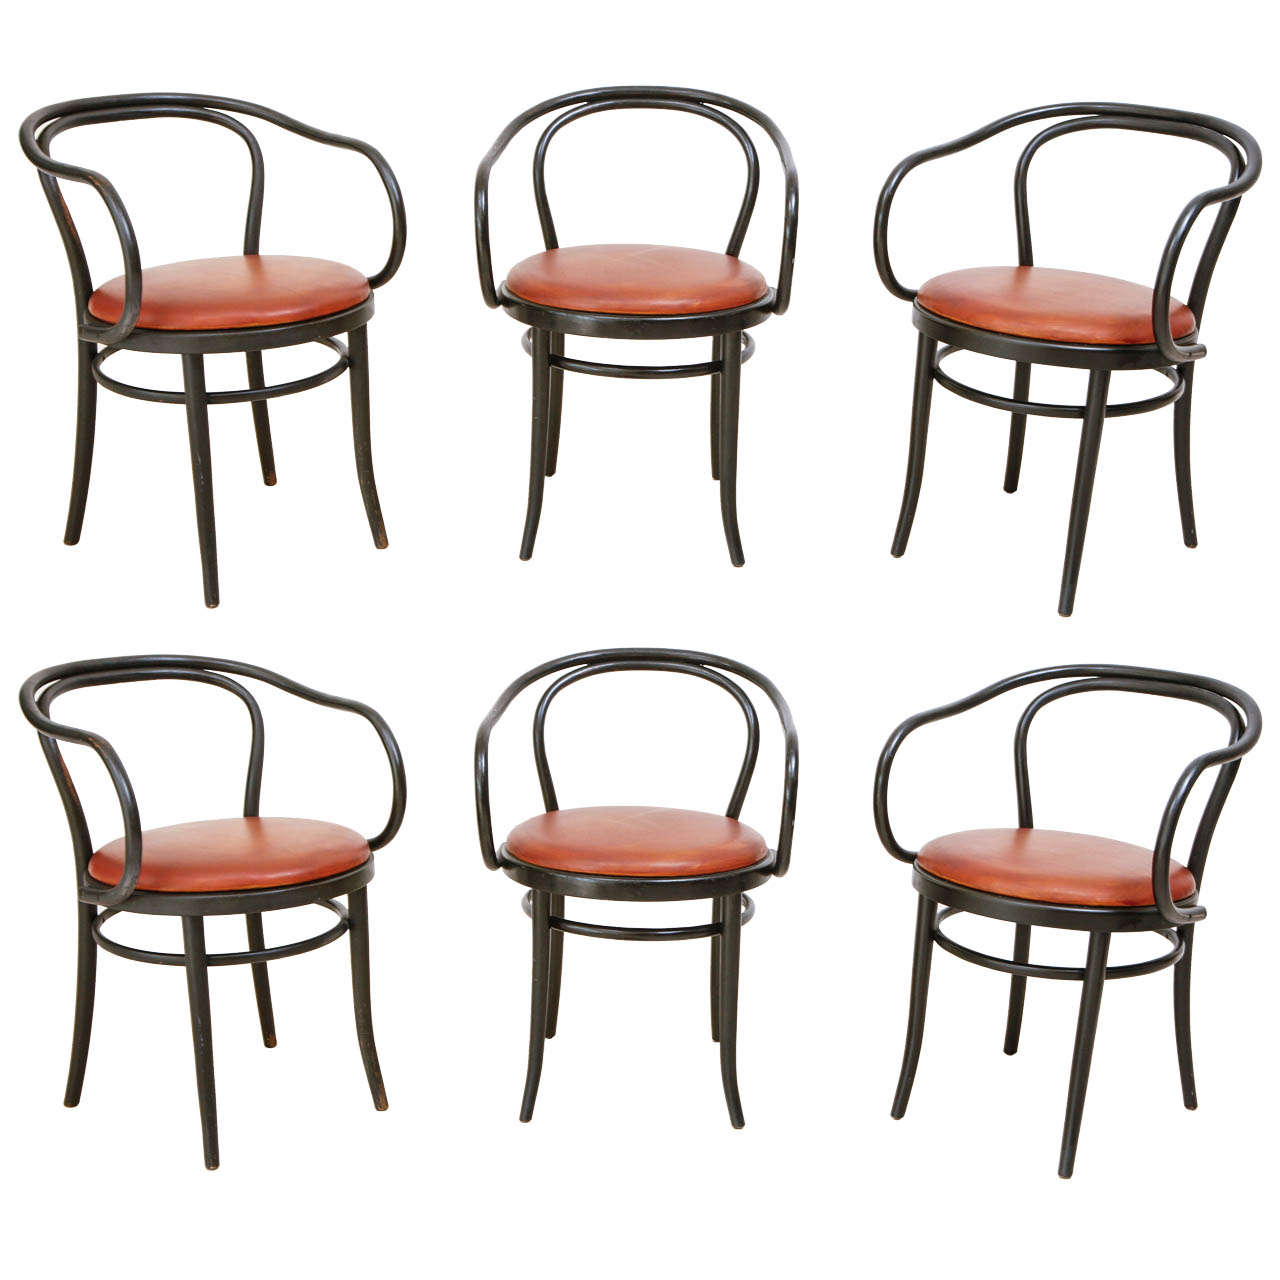 Set Of 6 Matte Black And Custom Leather Thonet Chairs 1